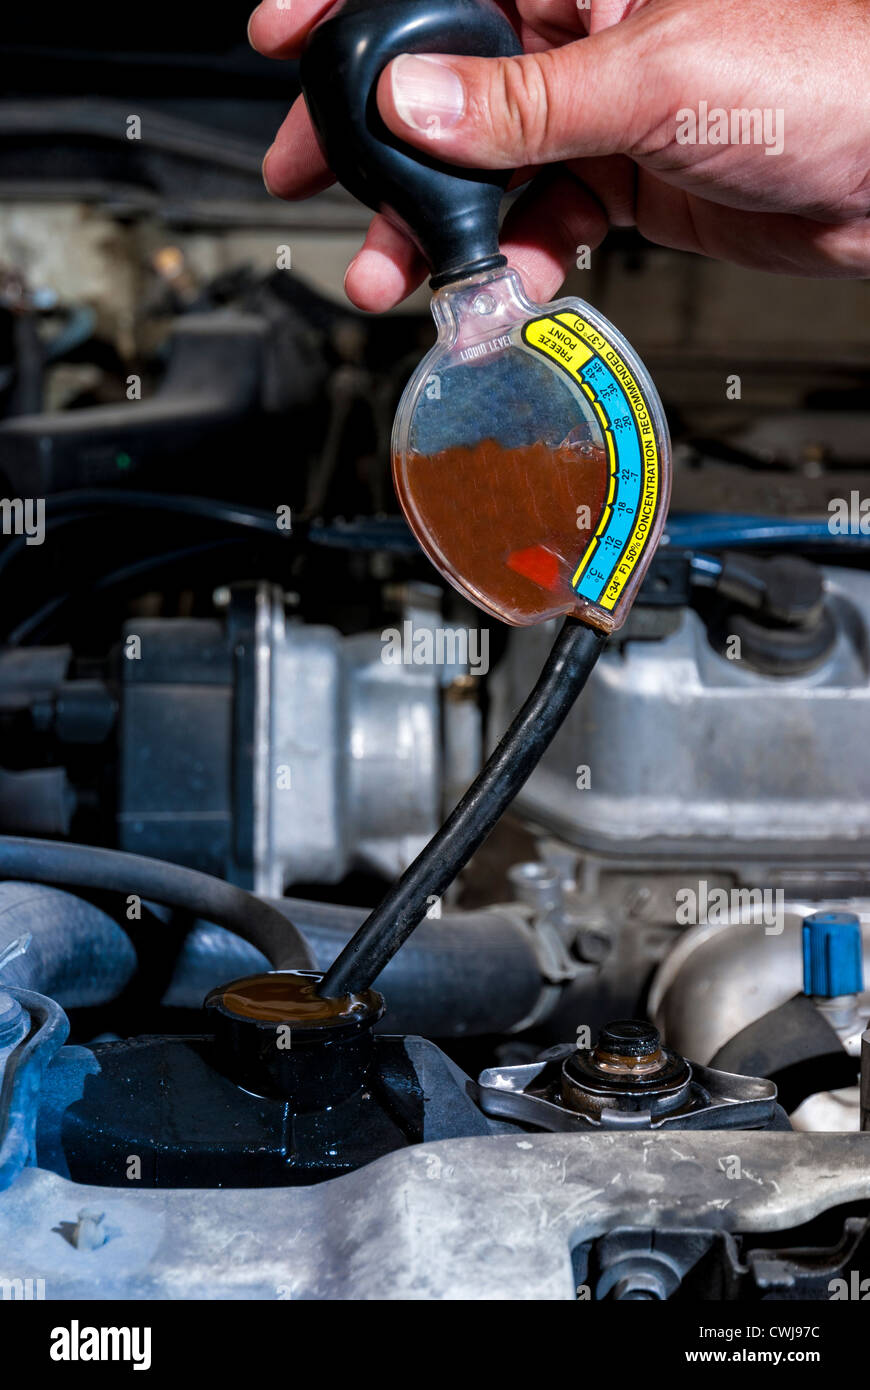 How To Check Antifreeze >> Do You Car Maintenance And Check The Antifreeze Stock Photo